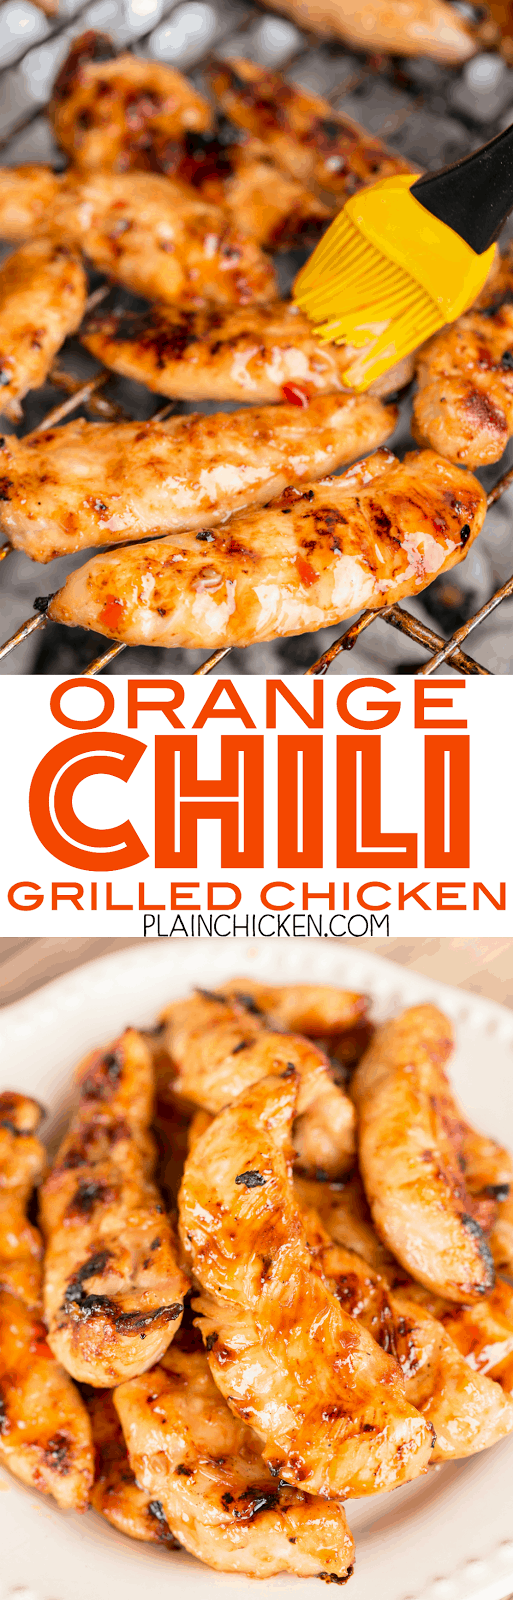 Orange Chili Grilled Chicken - seriously delicious! Only 4 ingredients! Chicken, sweet chili sauce, honey and orange juice. Grill and baste with reserved sauce. SO much great flavor!!! We always double the recipe for leftovers - great on a salad or in a wrap. We LOVE this easy chicken marinade recipe!!!